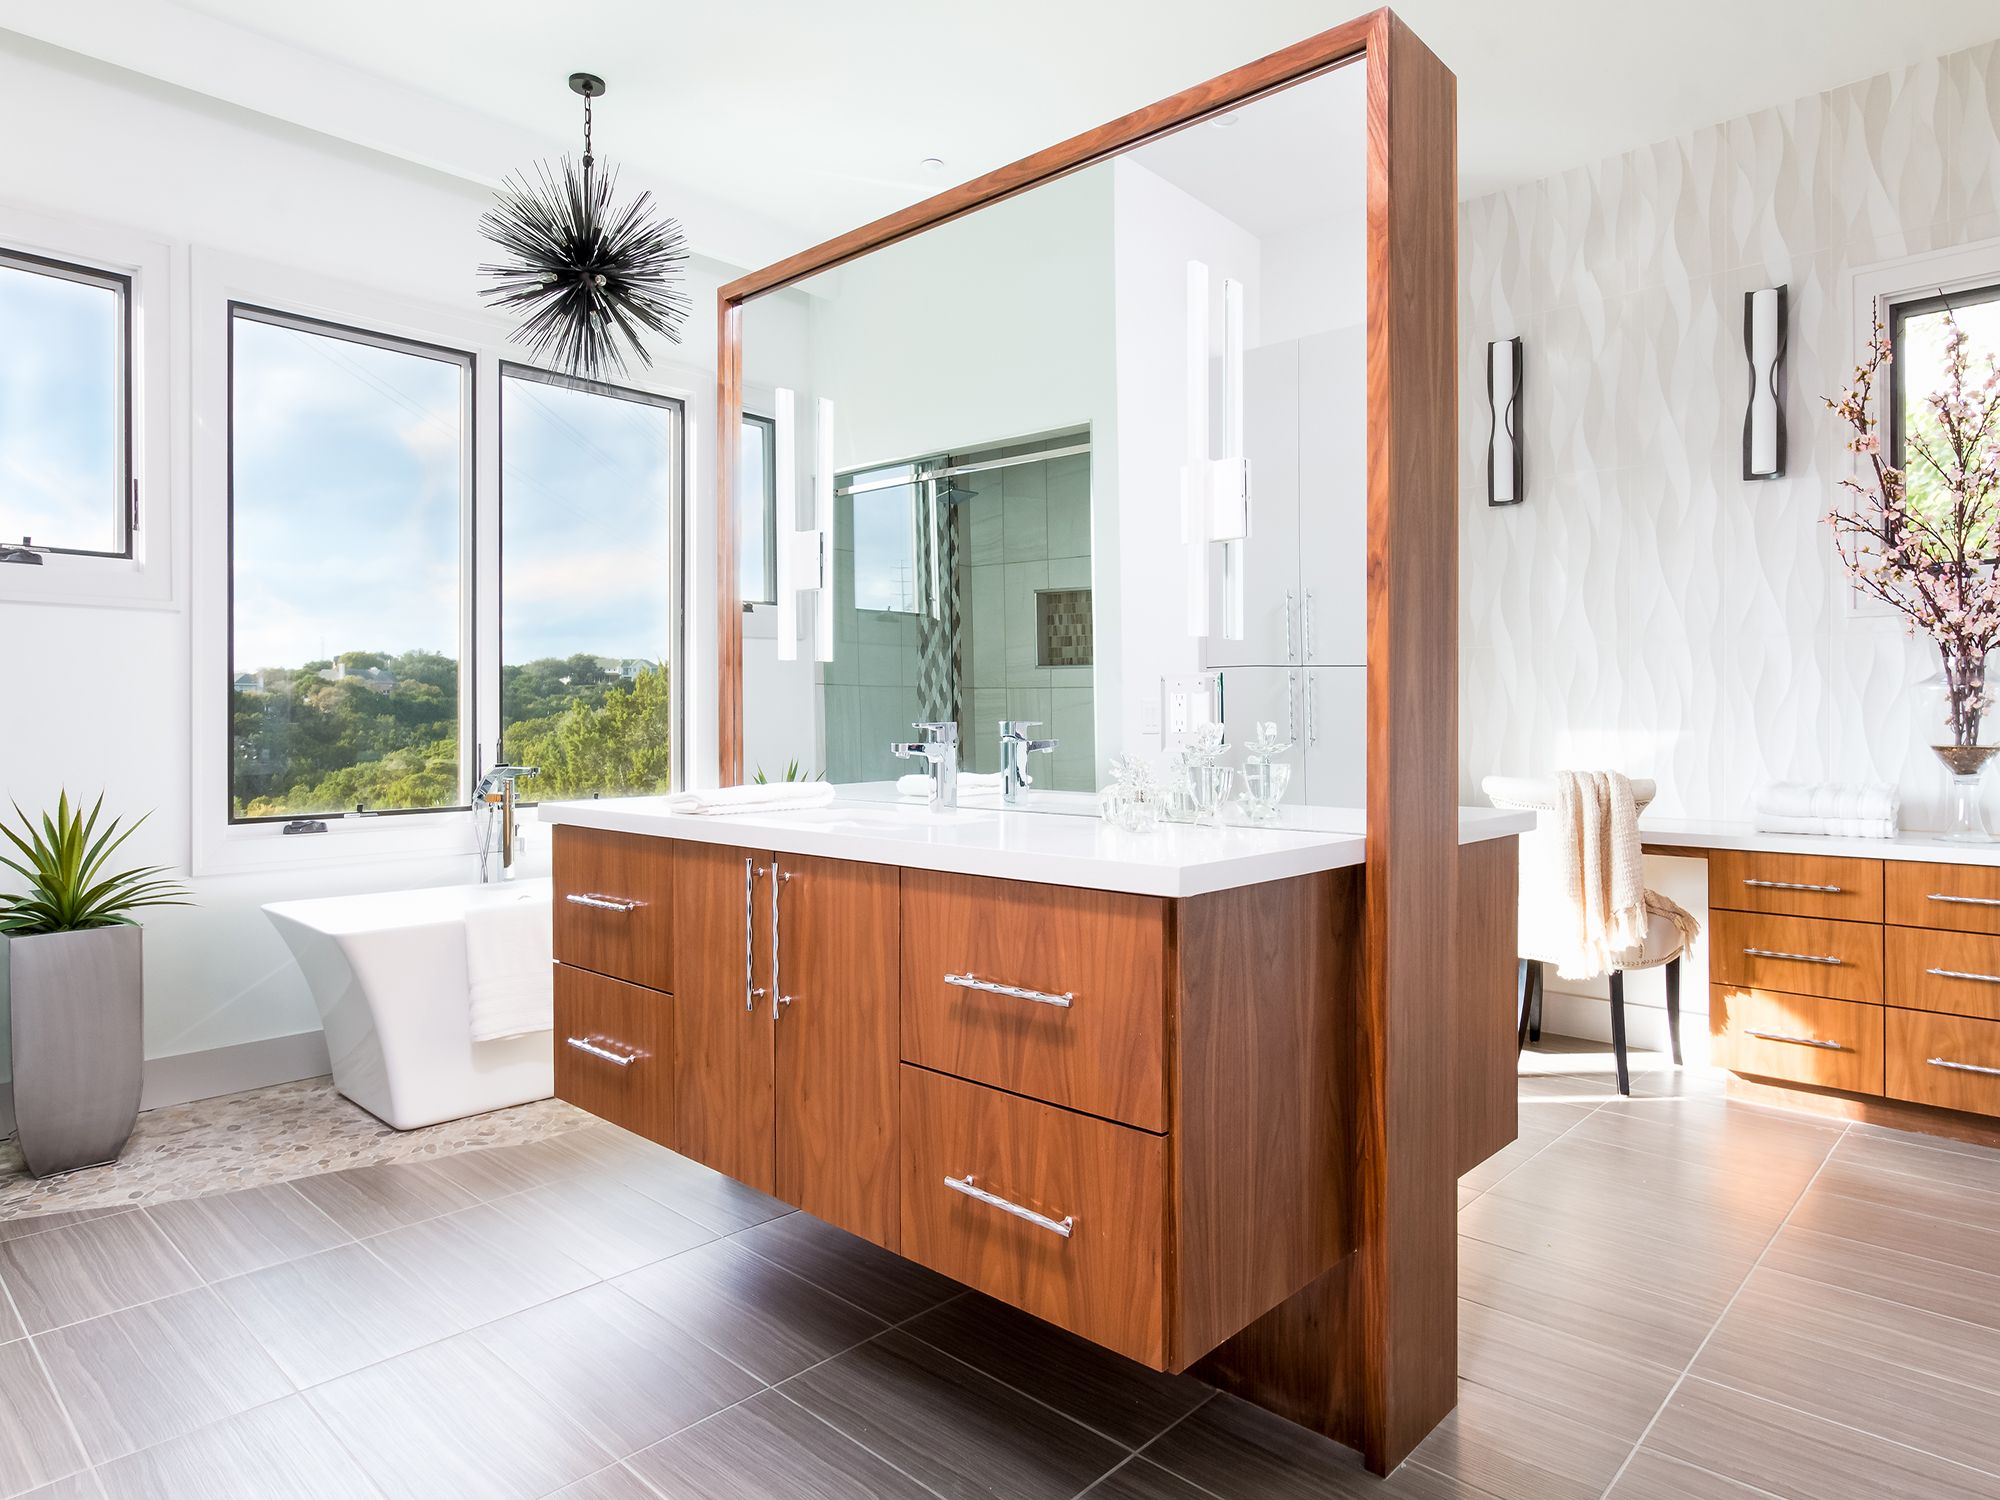 Expansive Spa Inspired Master Bath - 524 Beardsley Lane  Contemporary